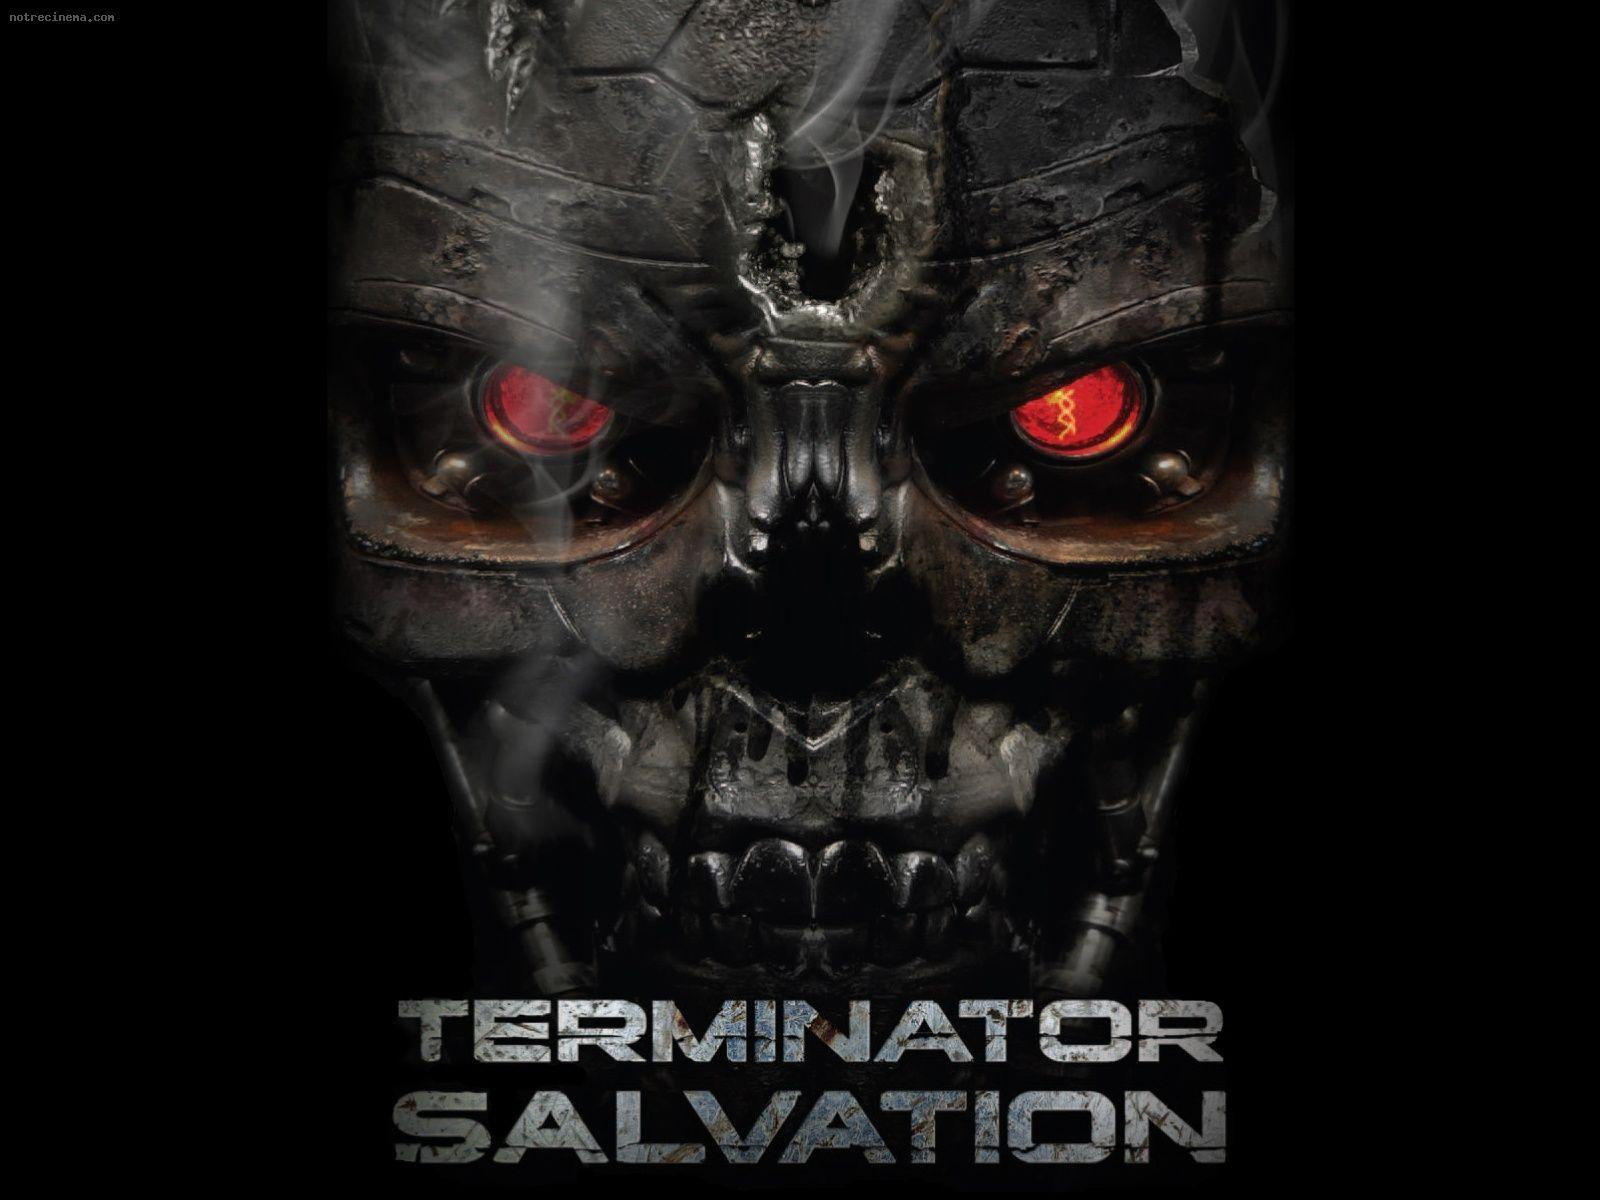 terminator salvation wallpaper hd - photo #21